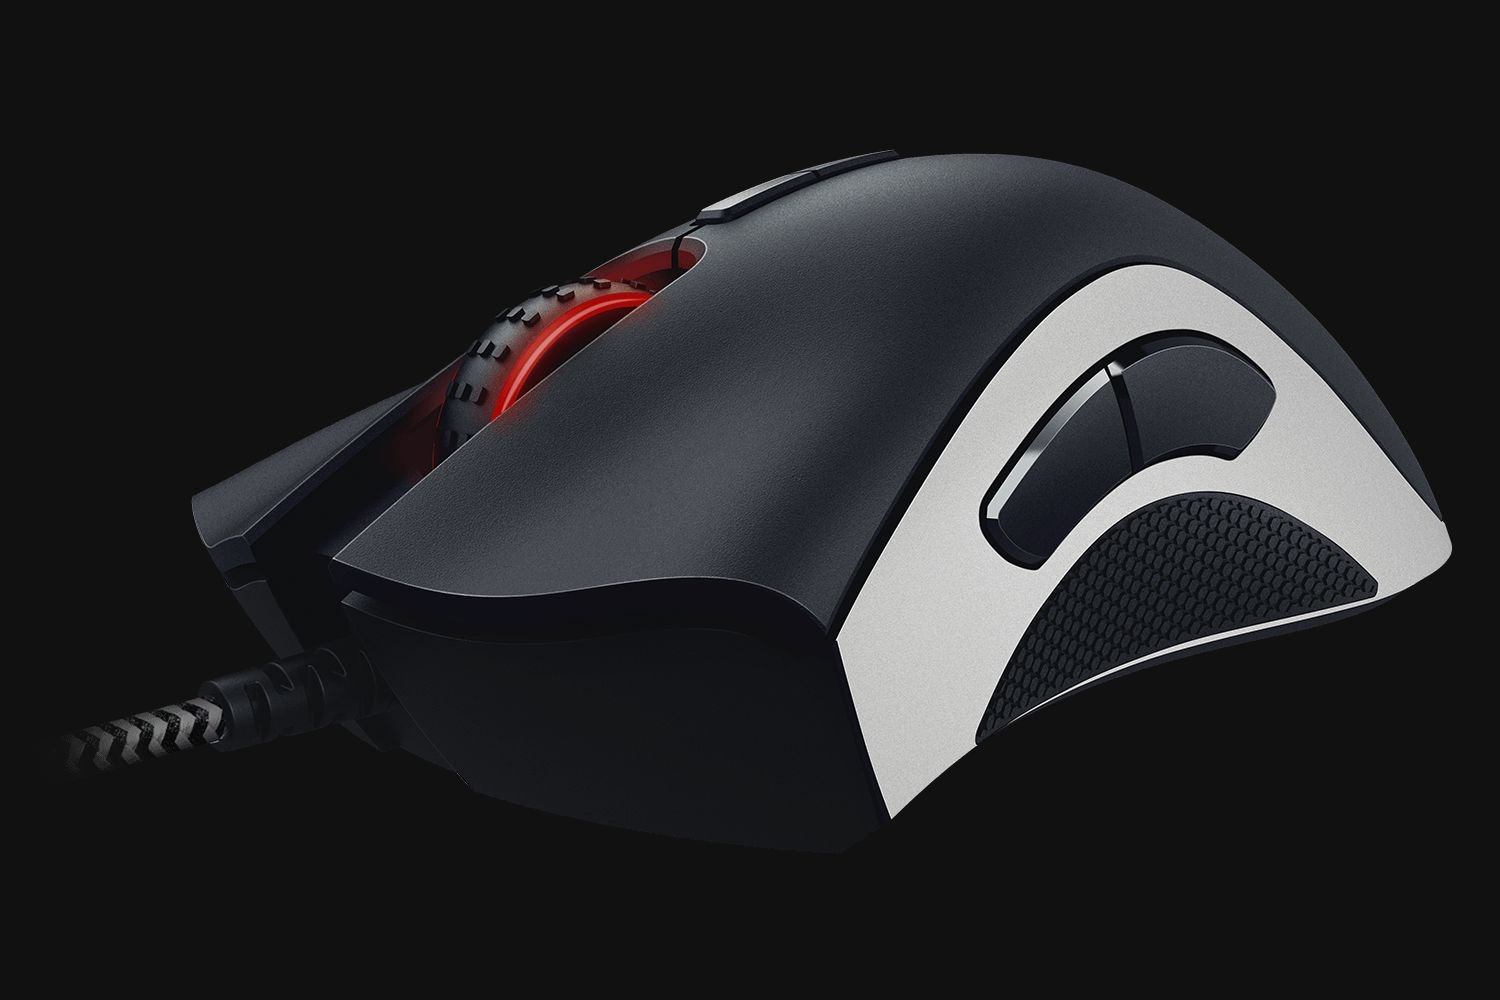 Destiny 2 Razer DeathAdder Elite review: Addertion by